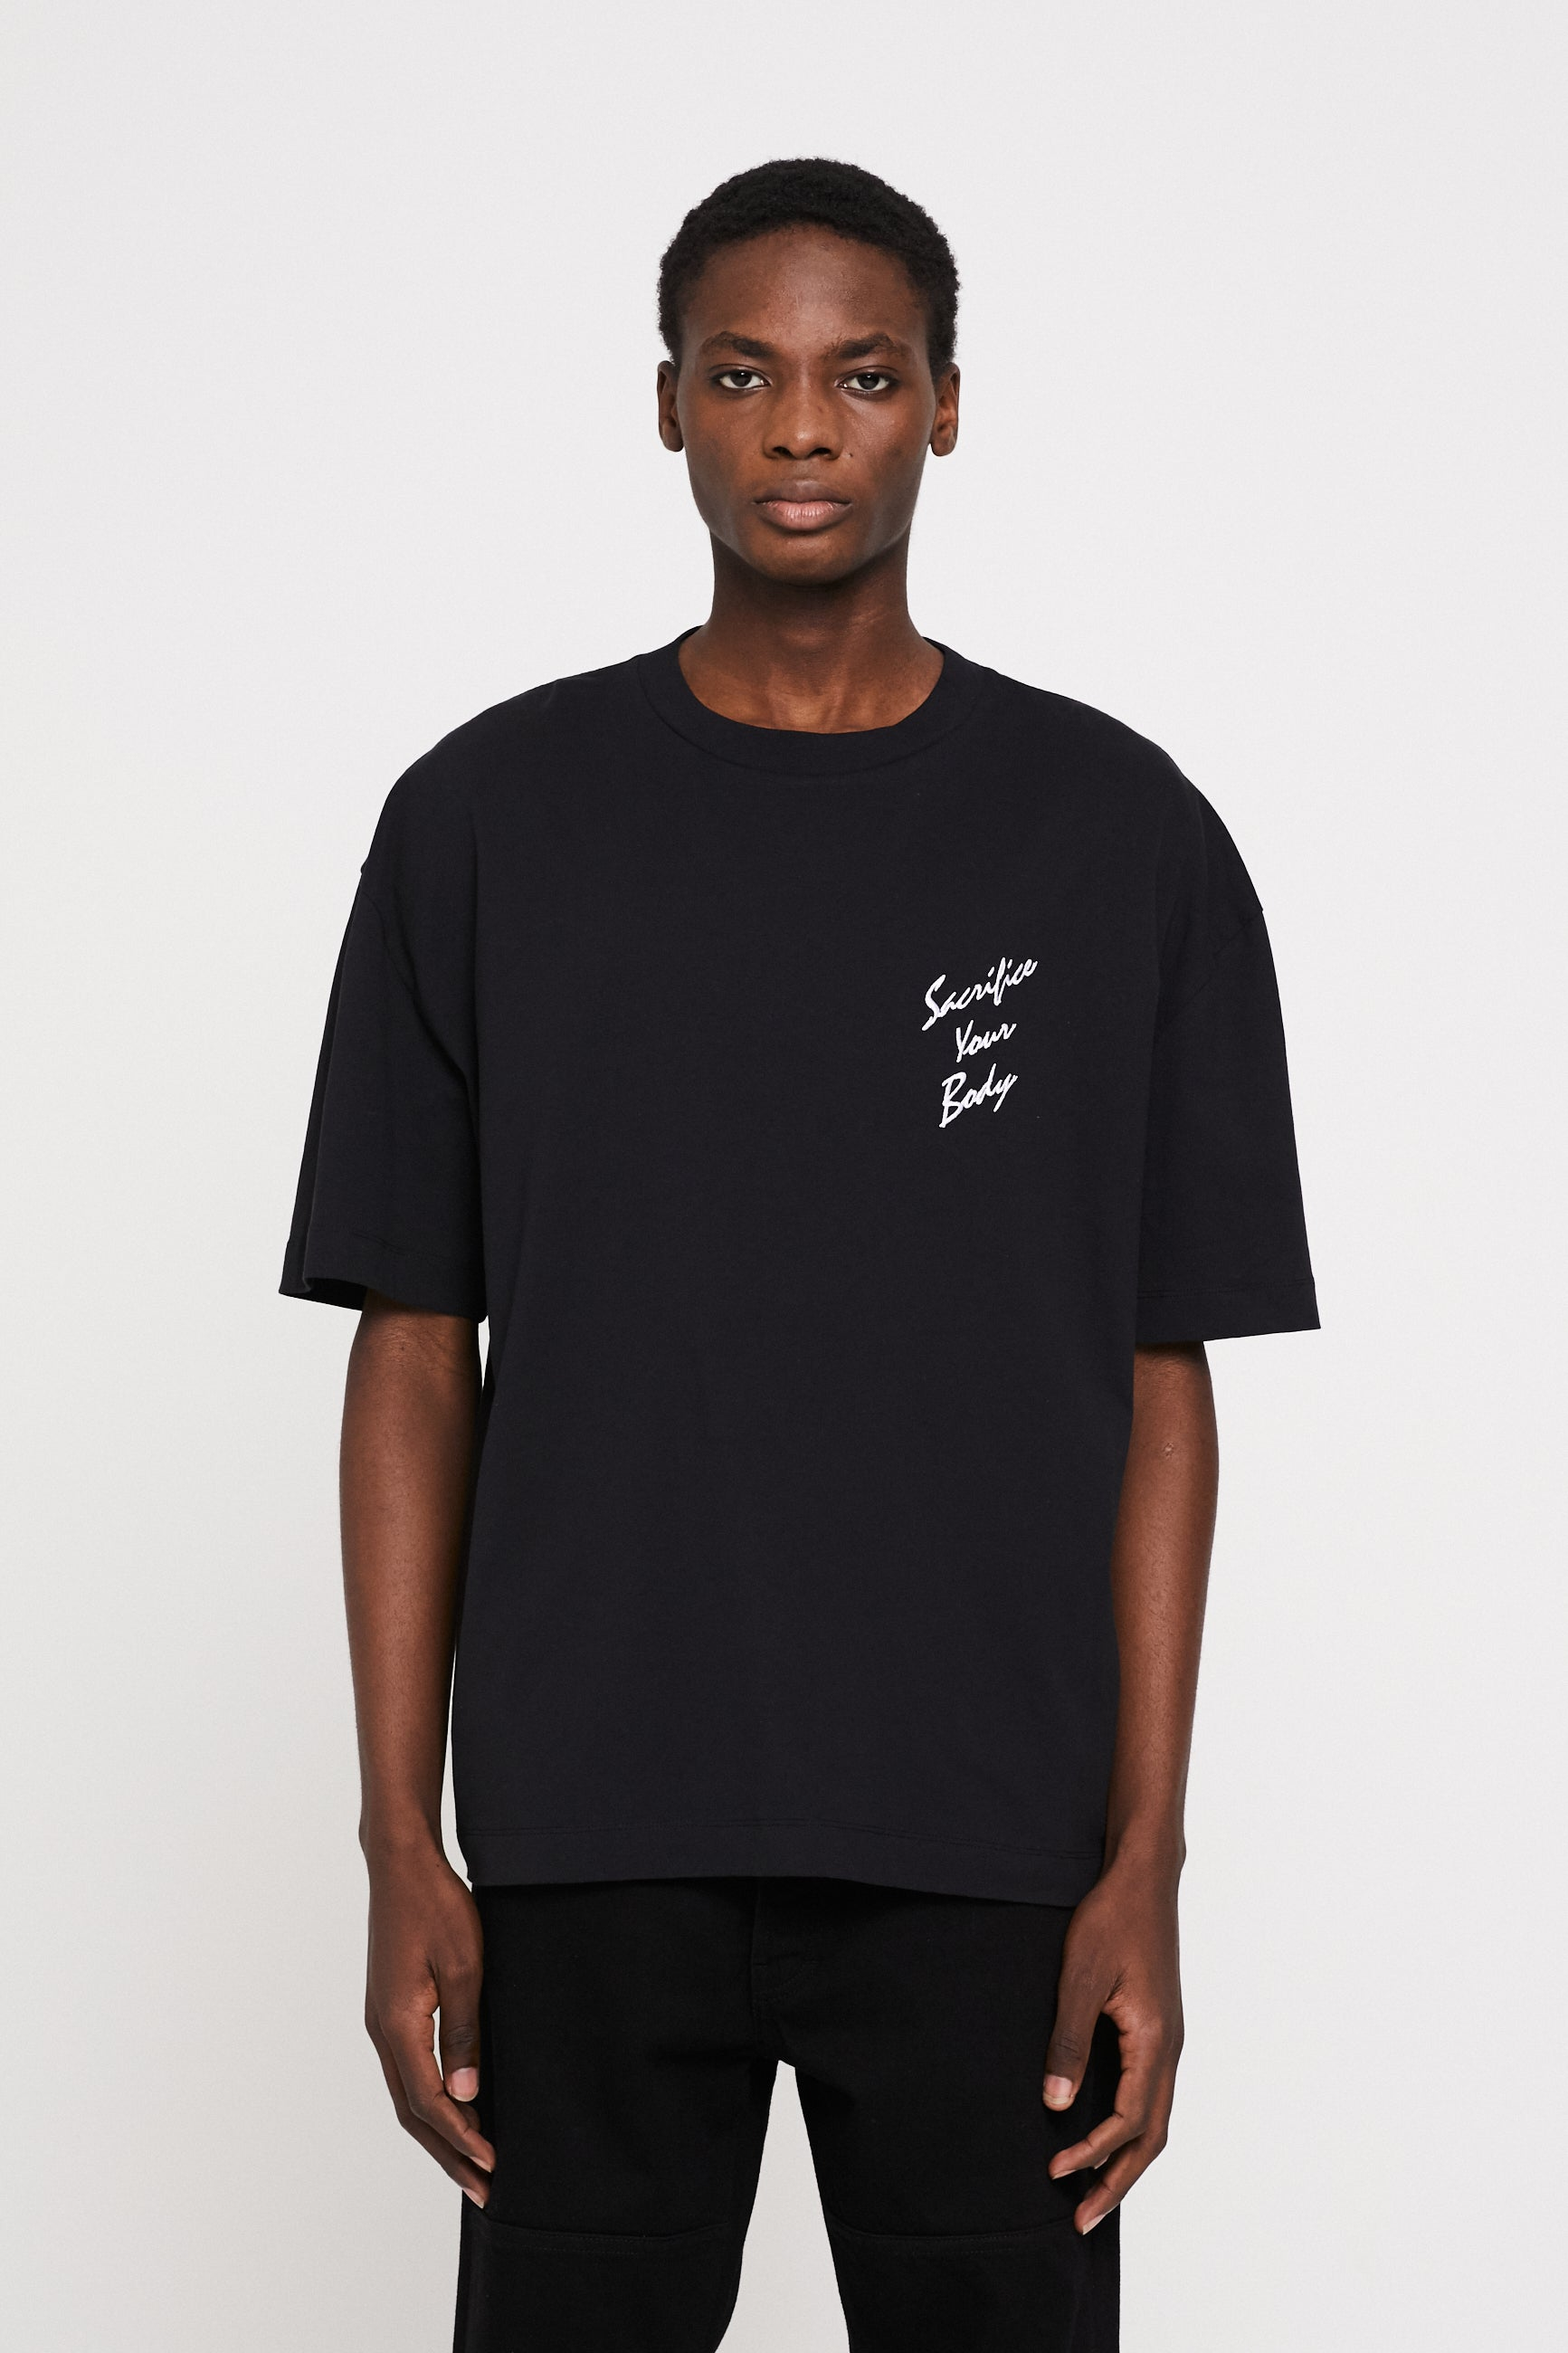 Études Spirit Sacrifice Roe Ethridge T-Shirt 2